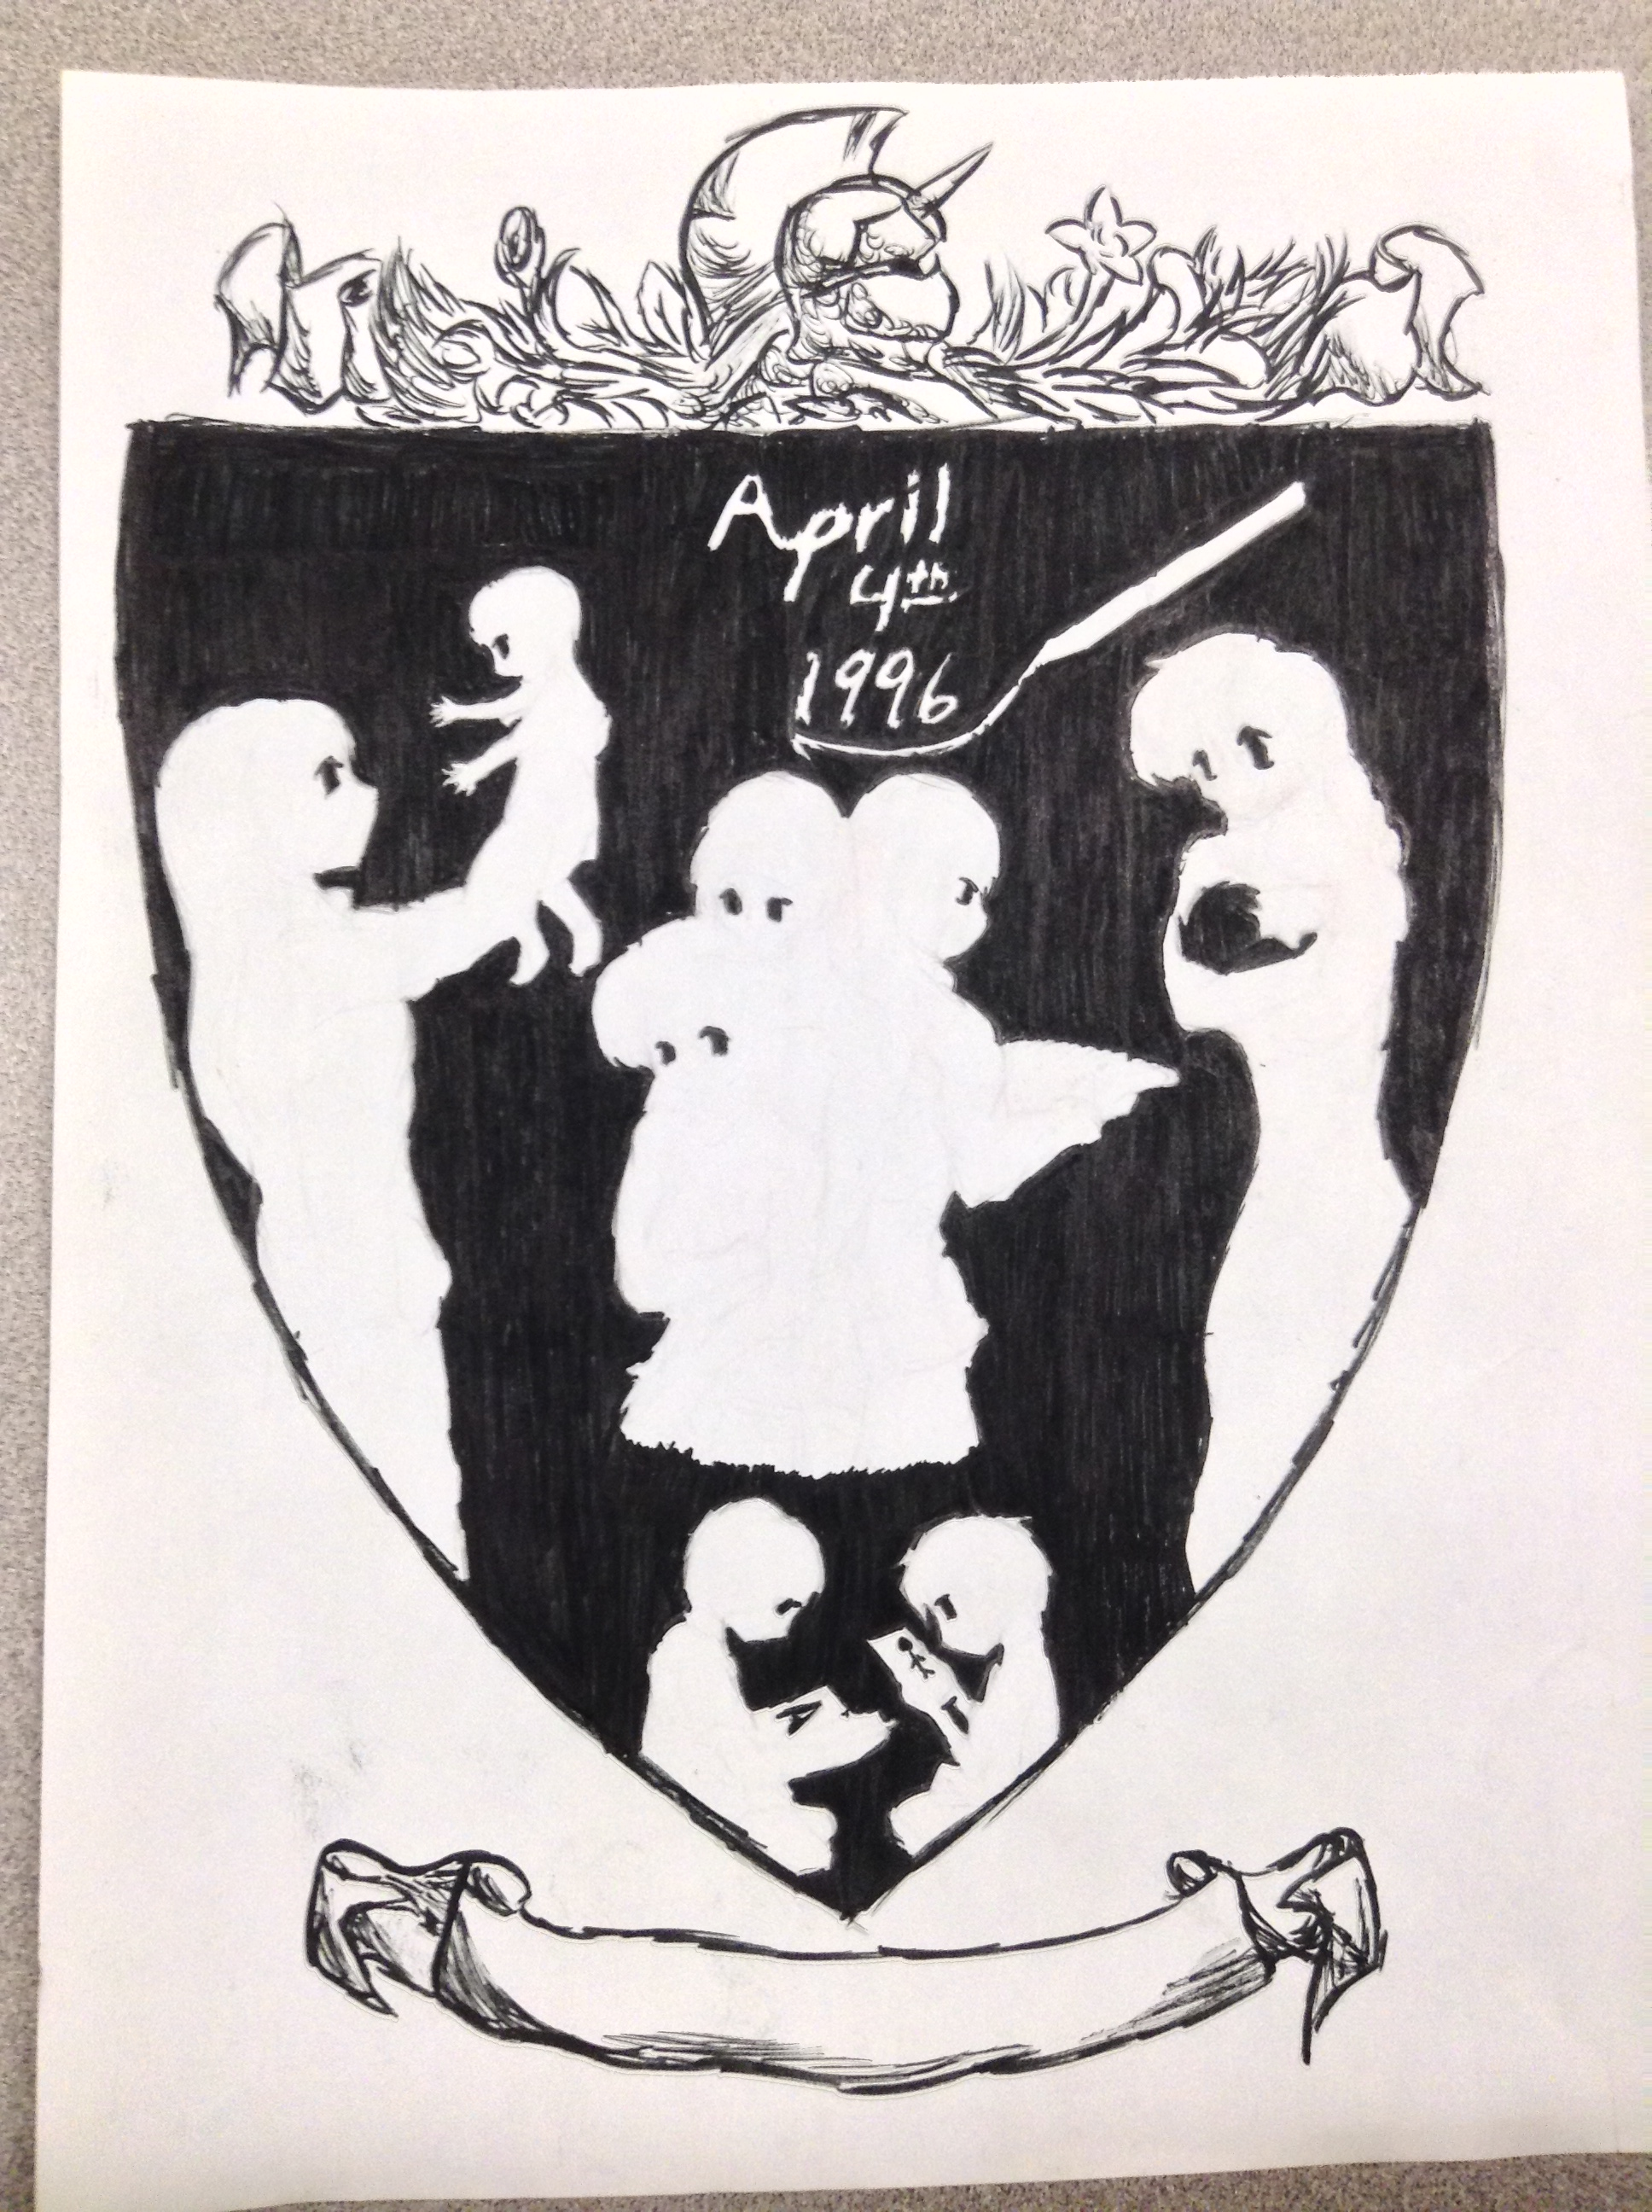 coat of arms project 2014 Find out more shields the shield depicts the family coat of arms in full color on the shield reverse is your family name history, which includes the country of origin for your family name, the meaning of your name, and many fascinating historical records.